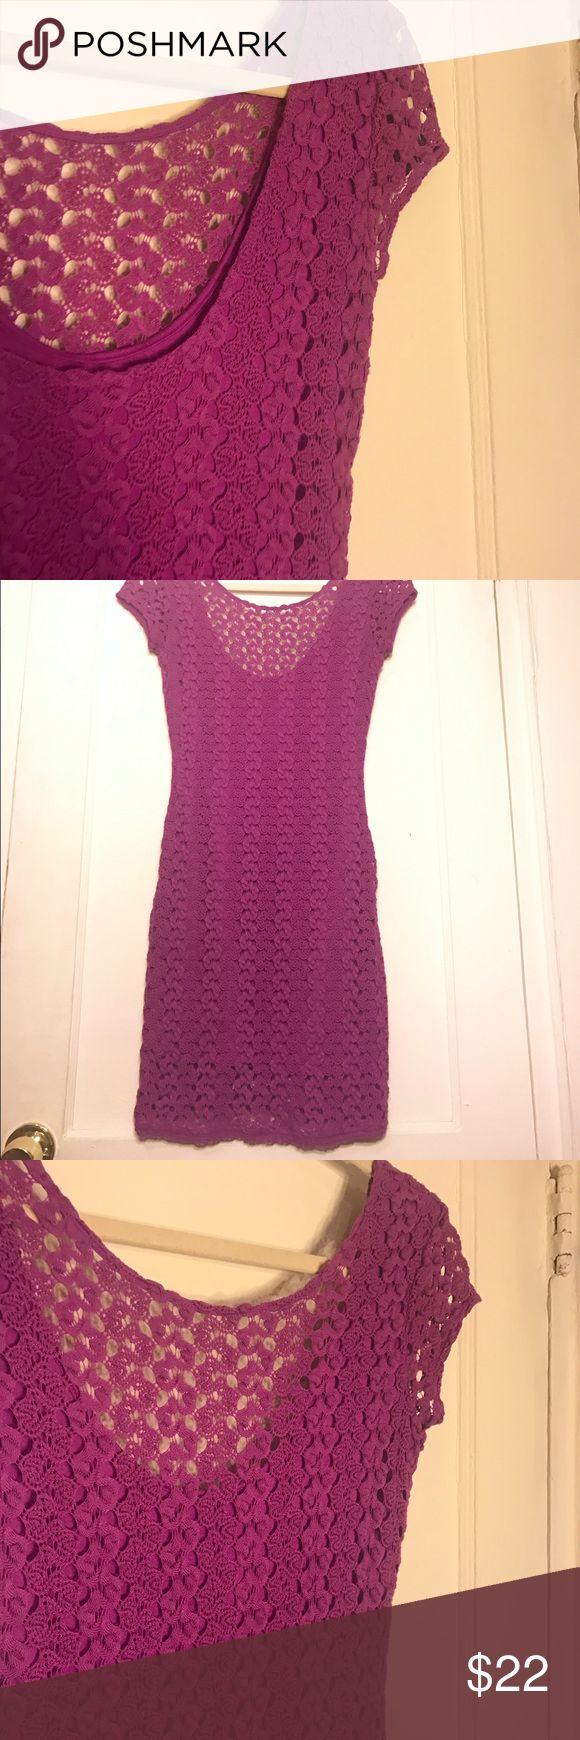 Gorgeous free people purple crochet mini dress Gorgeous crochet dress, in great condition. Two small holes on the inside layer by the front shoulder, if you wear a purple tank under then it's not noticeable or if it's positioned right. Super flattering, great for spring or summer! Free People Dresses Mini